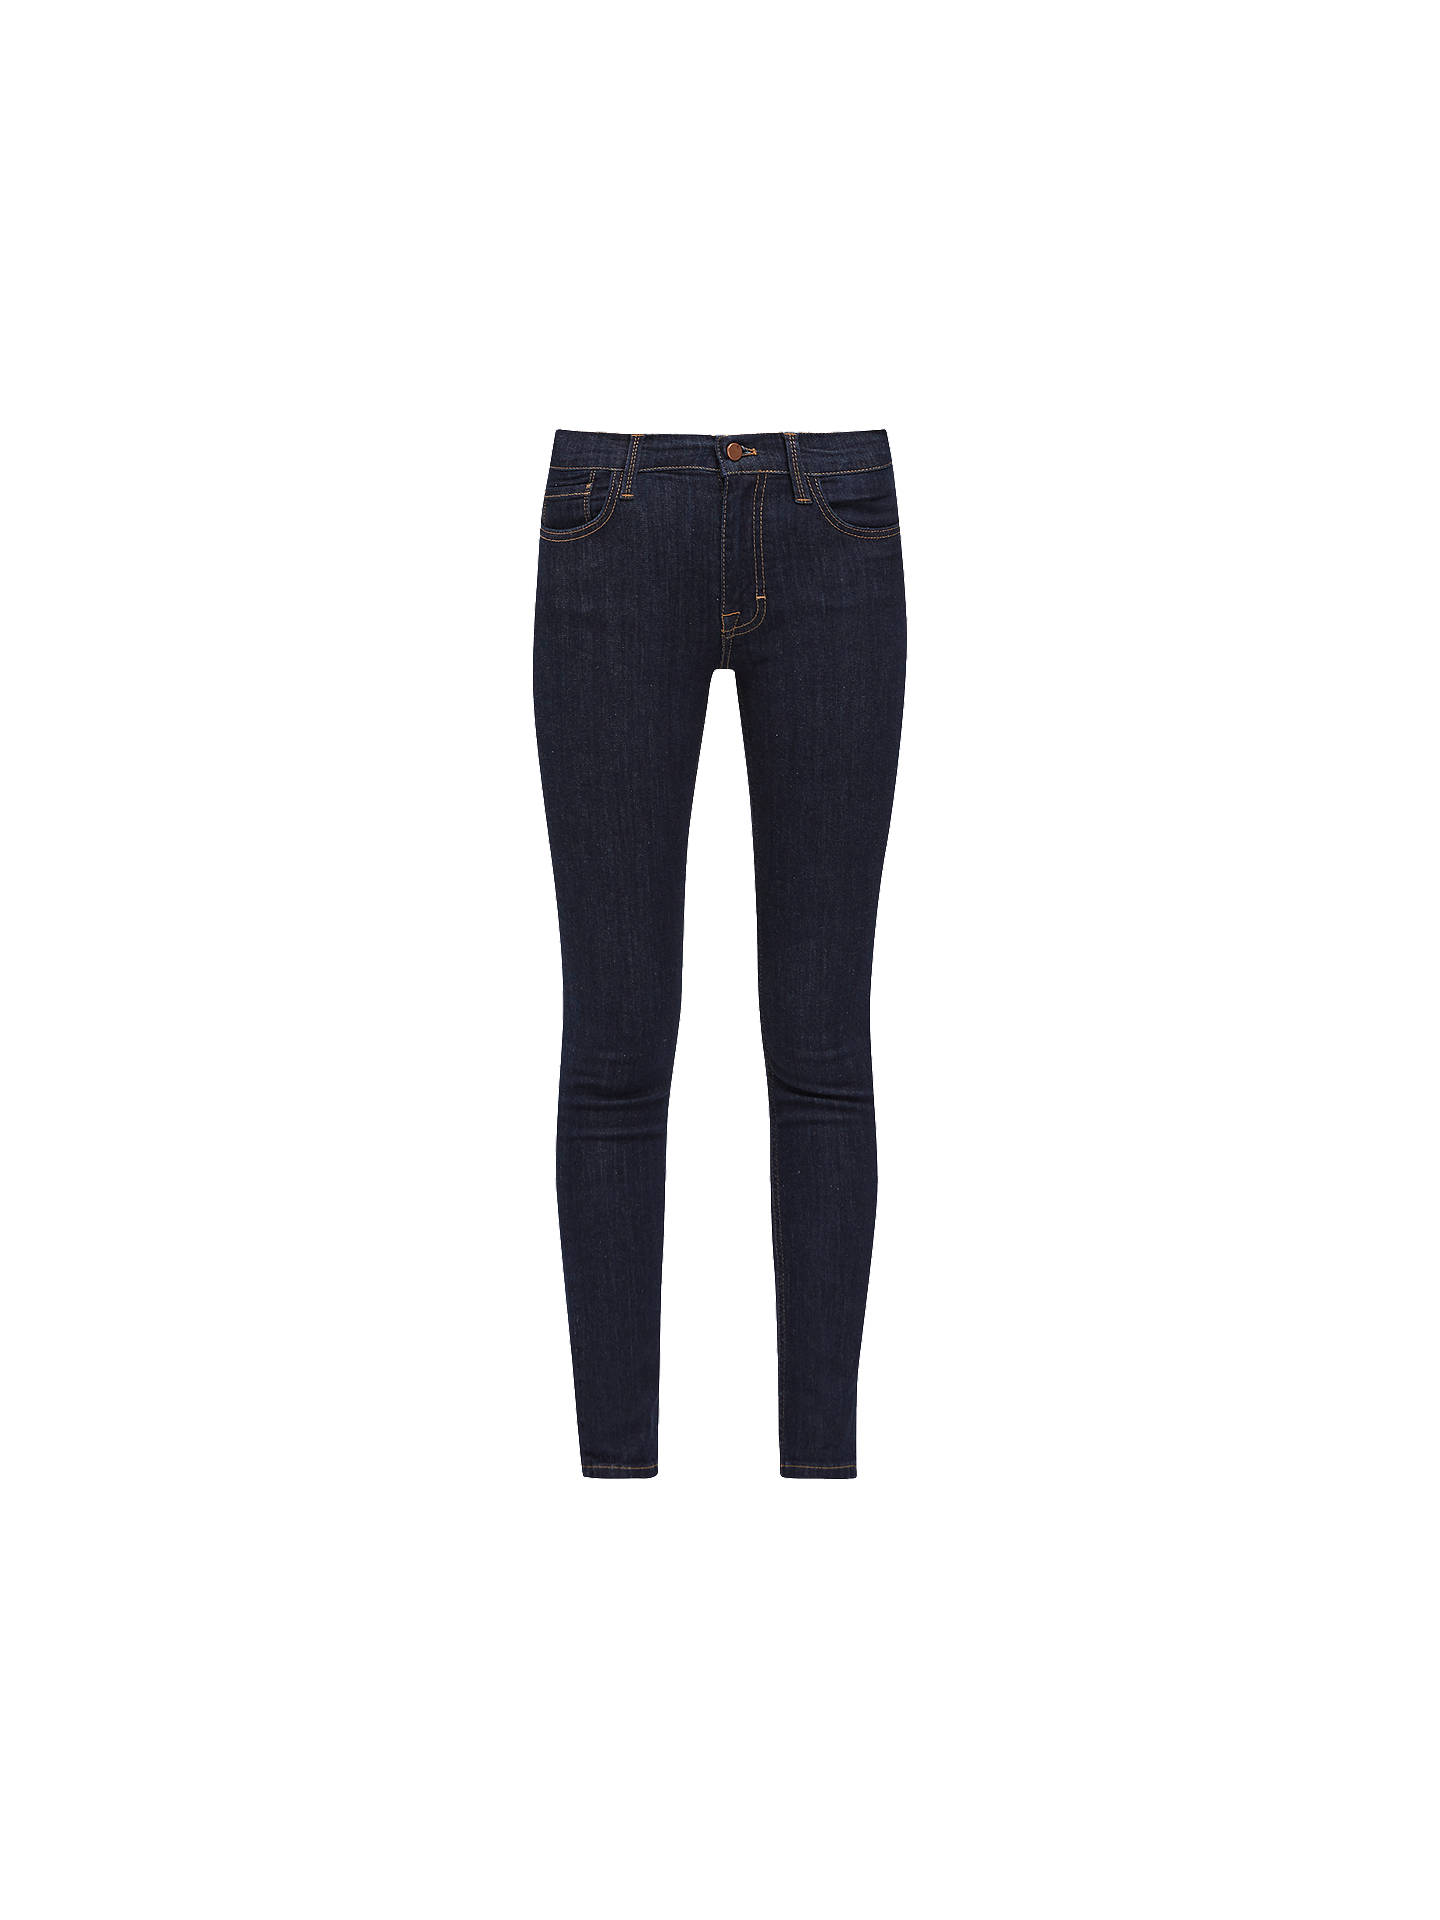 Buy French Connection Skinny Stretch Denim Jeans, Indigo, 6 Online at johnlewis.com